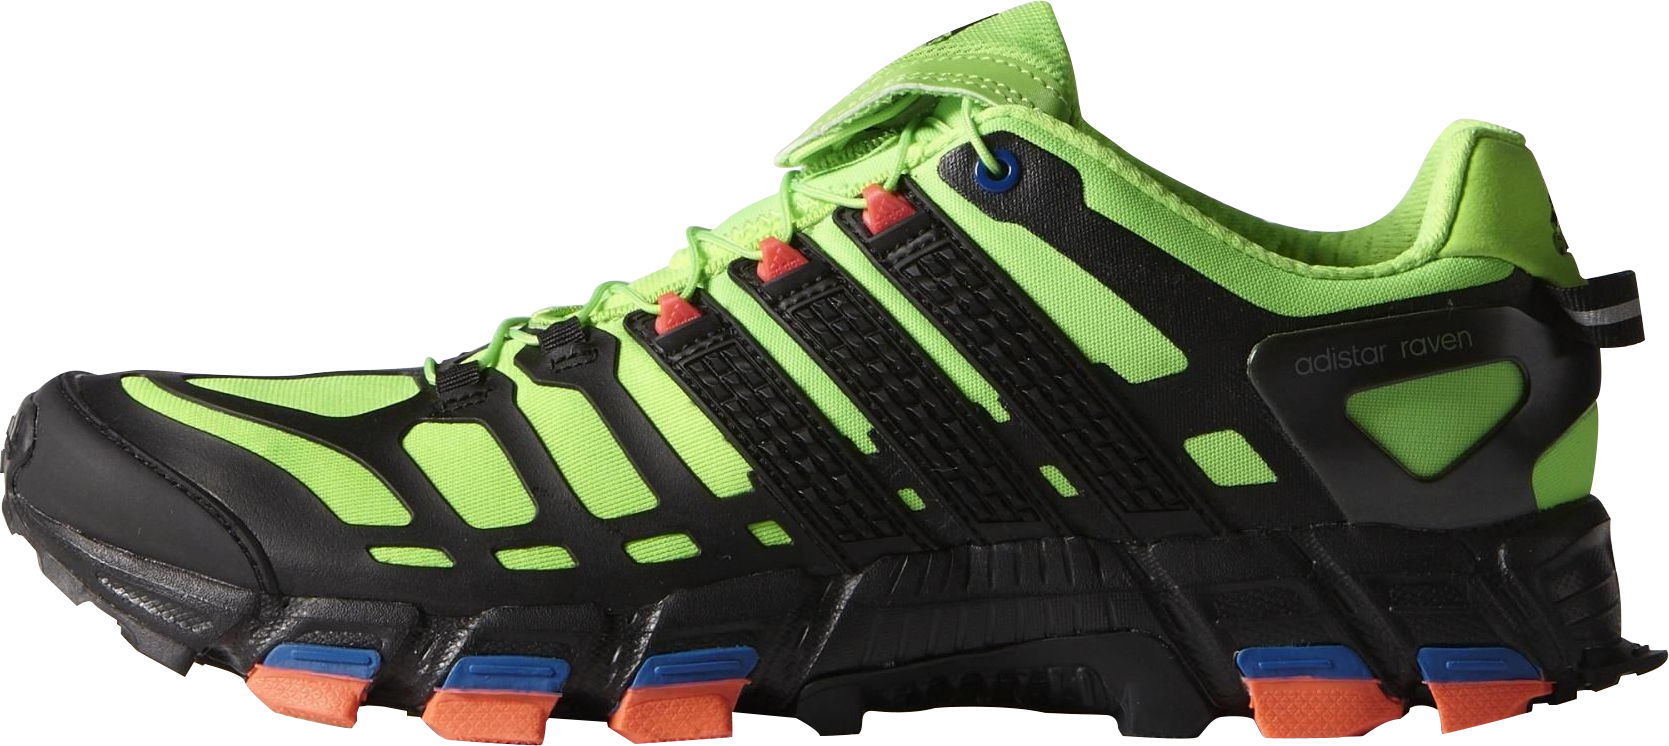 Wiggle TrailAdidas Raven 3 Chaussures De Shoes Adistar Aw14 TFKJ1lc